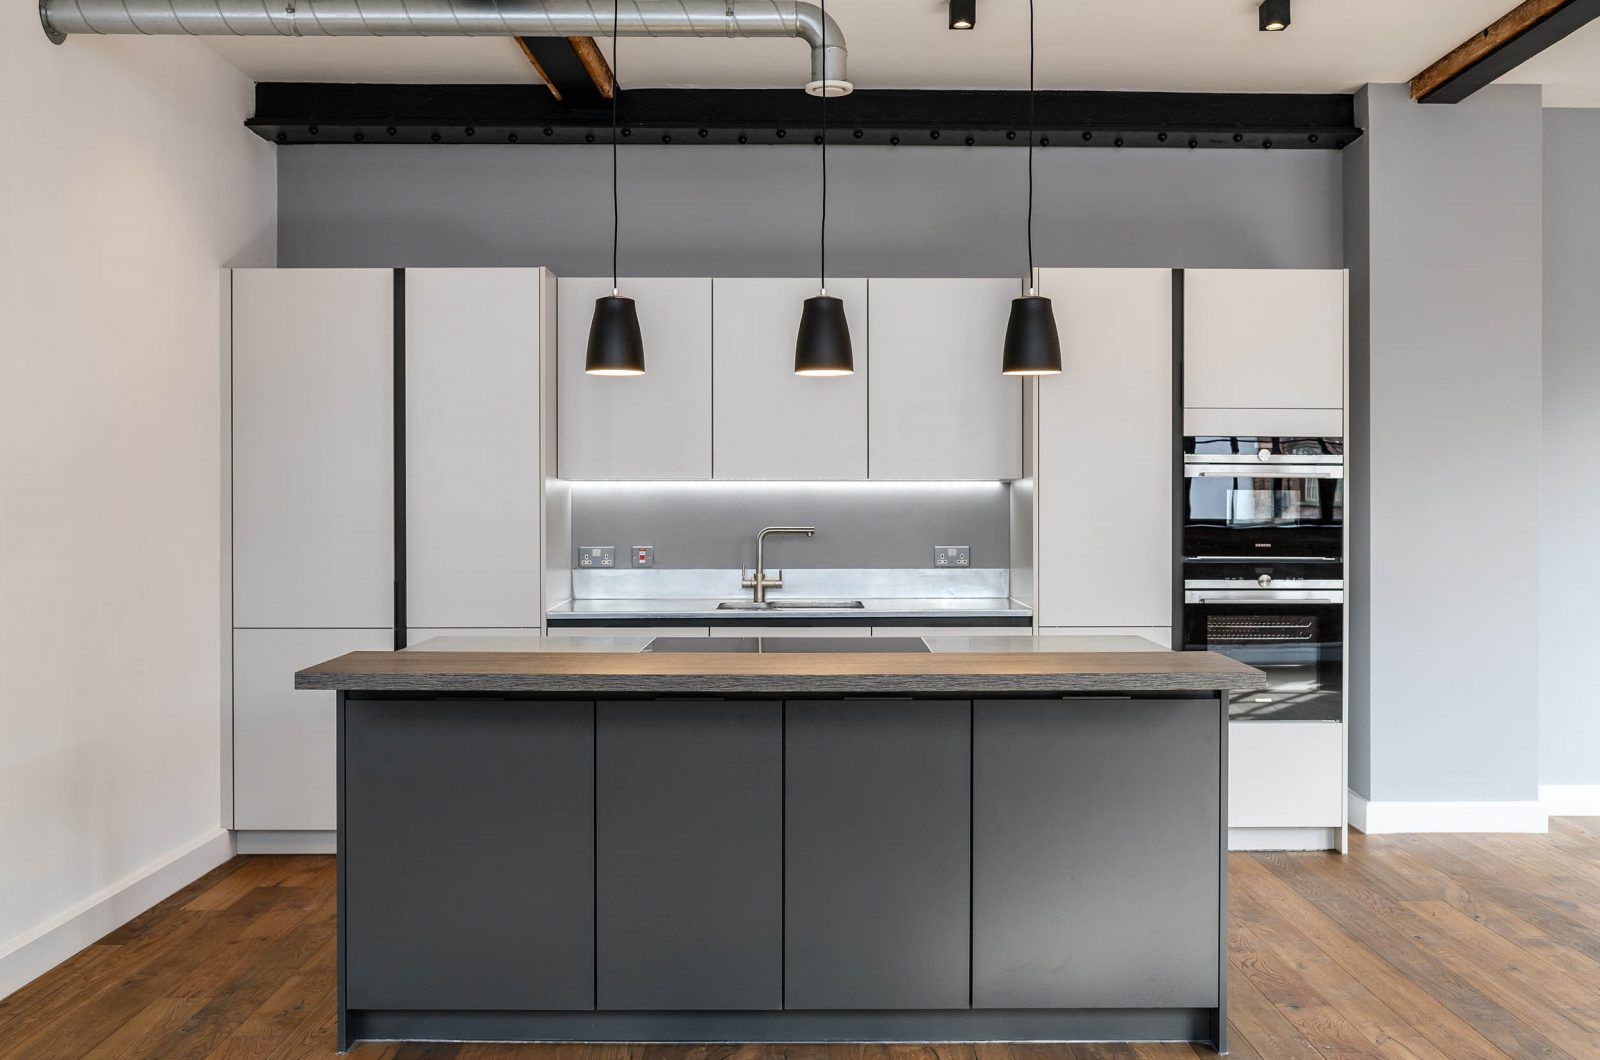 LIV Projekt modern black and grey kitchen with 3 black pendant lights in an industrial style room